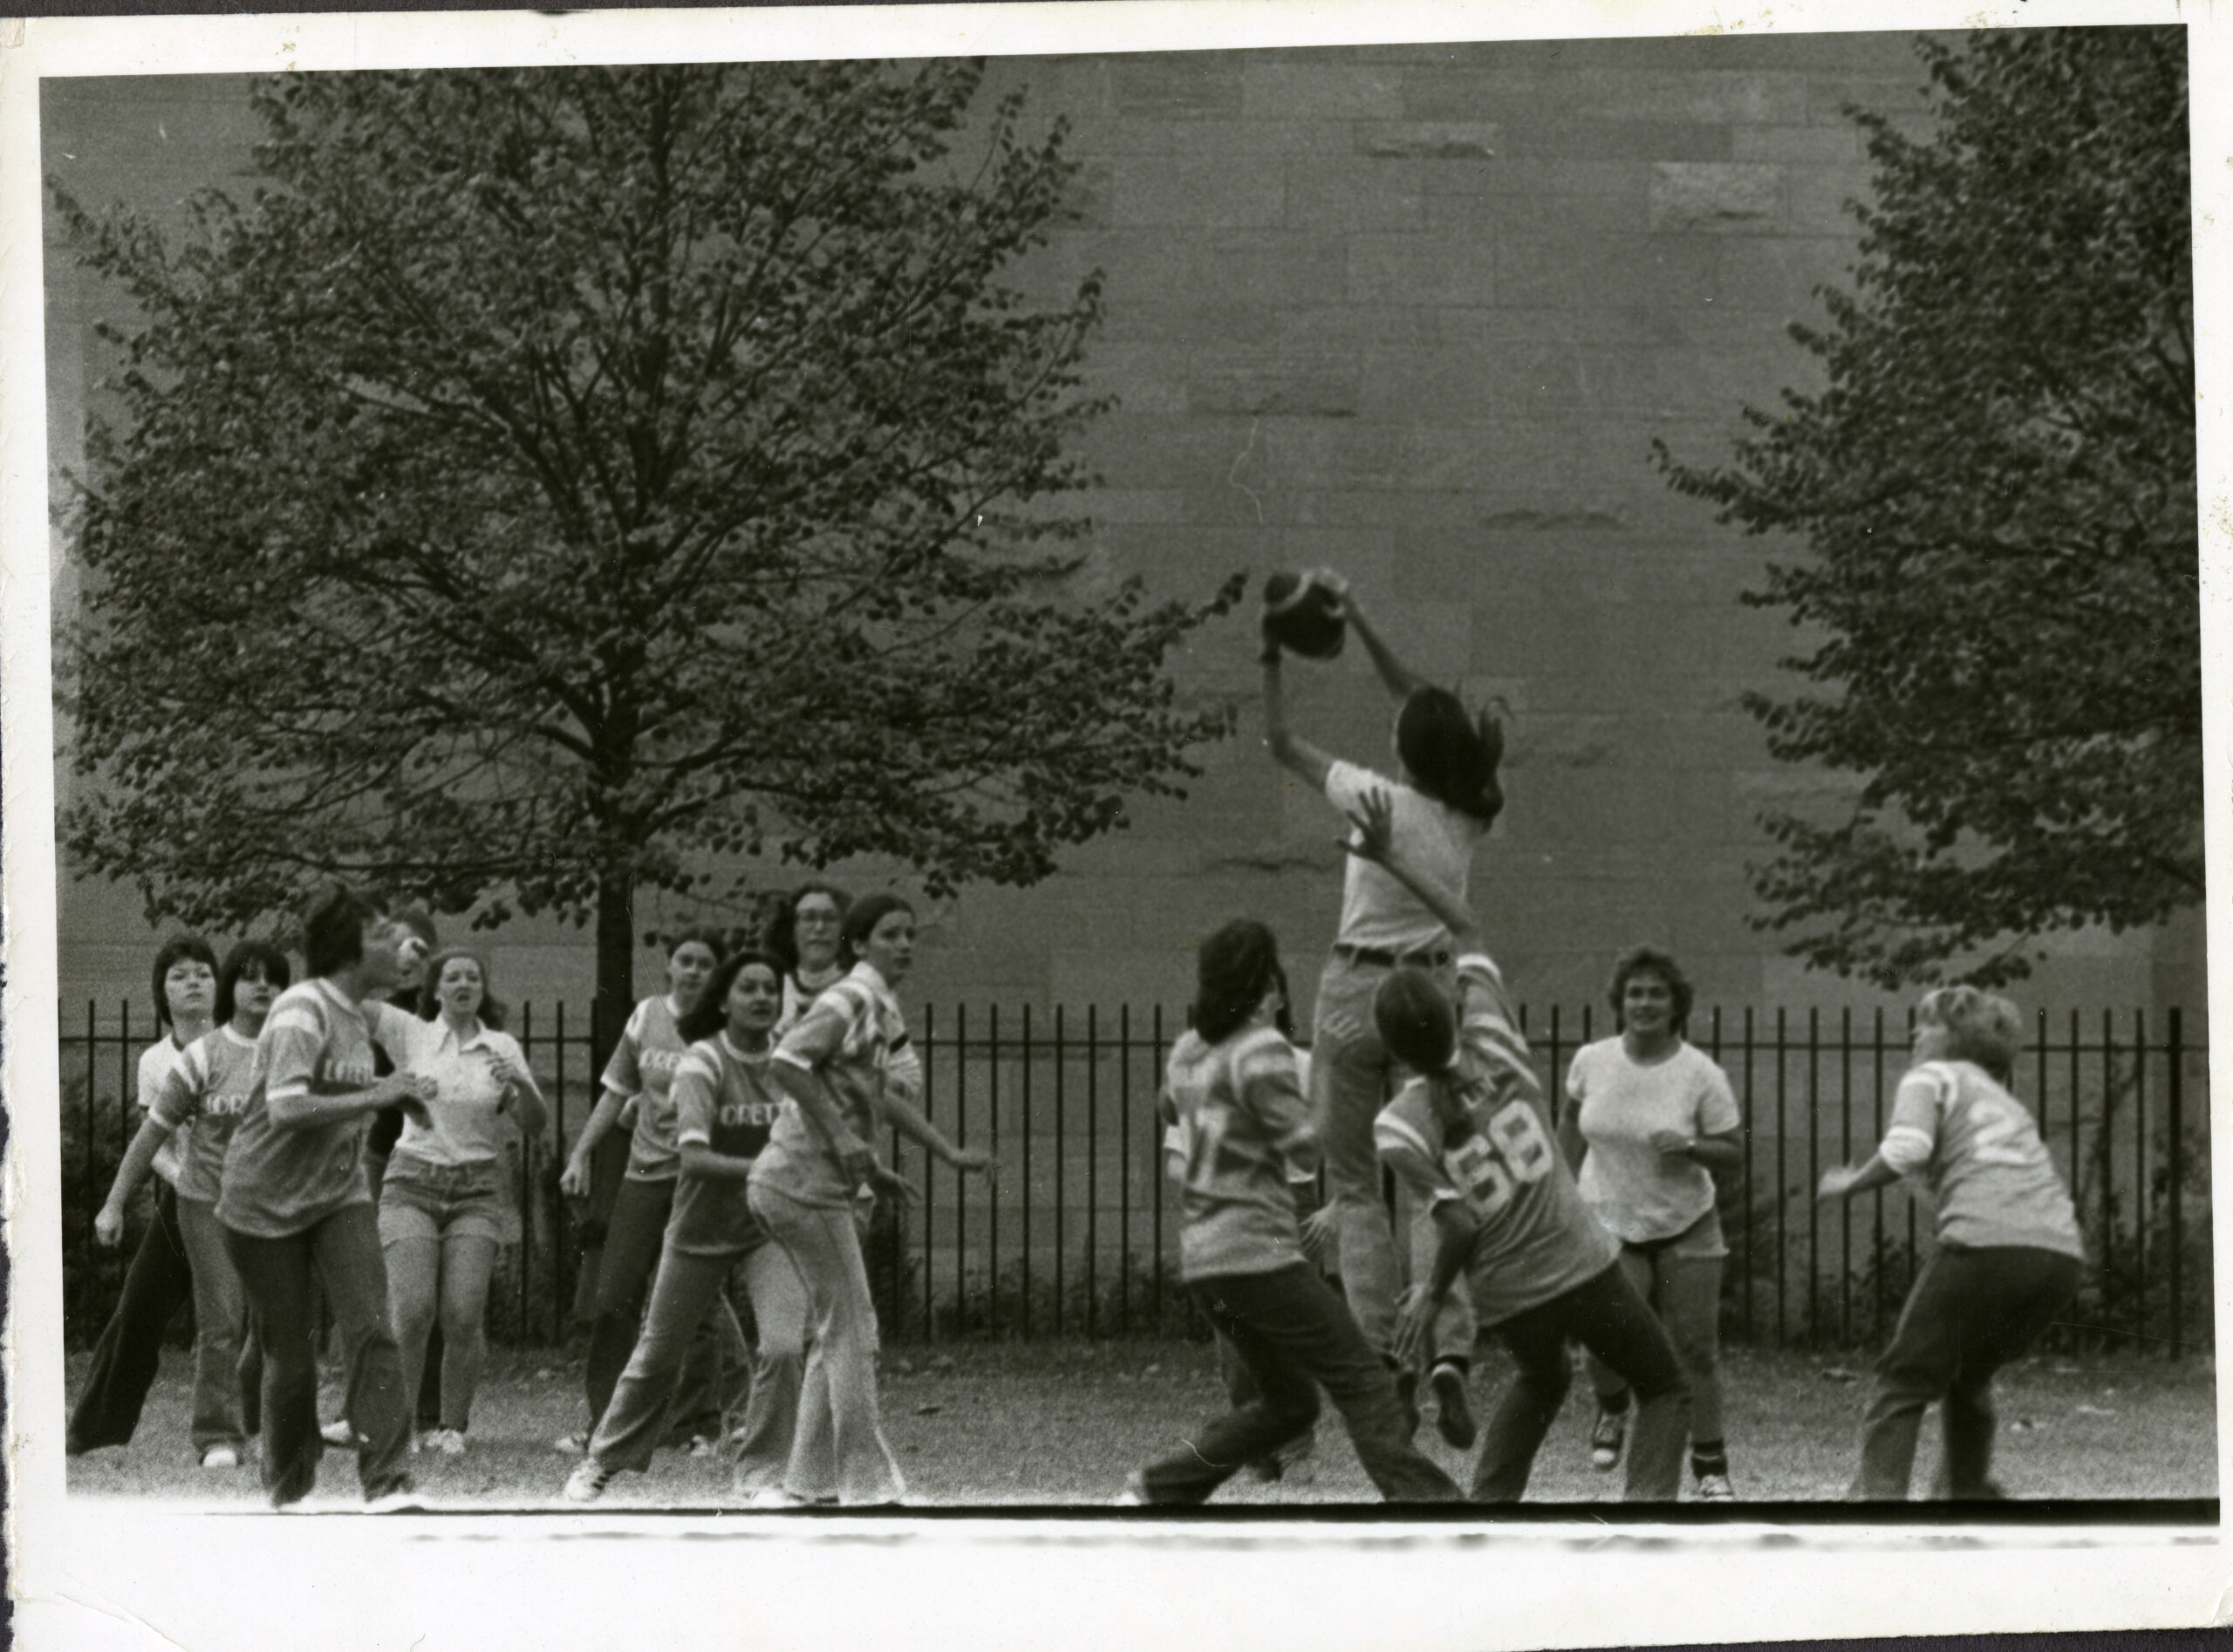 Image depicts a black and white photo of males and females playing basket ball